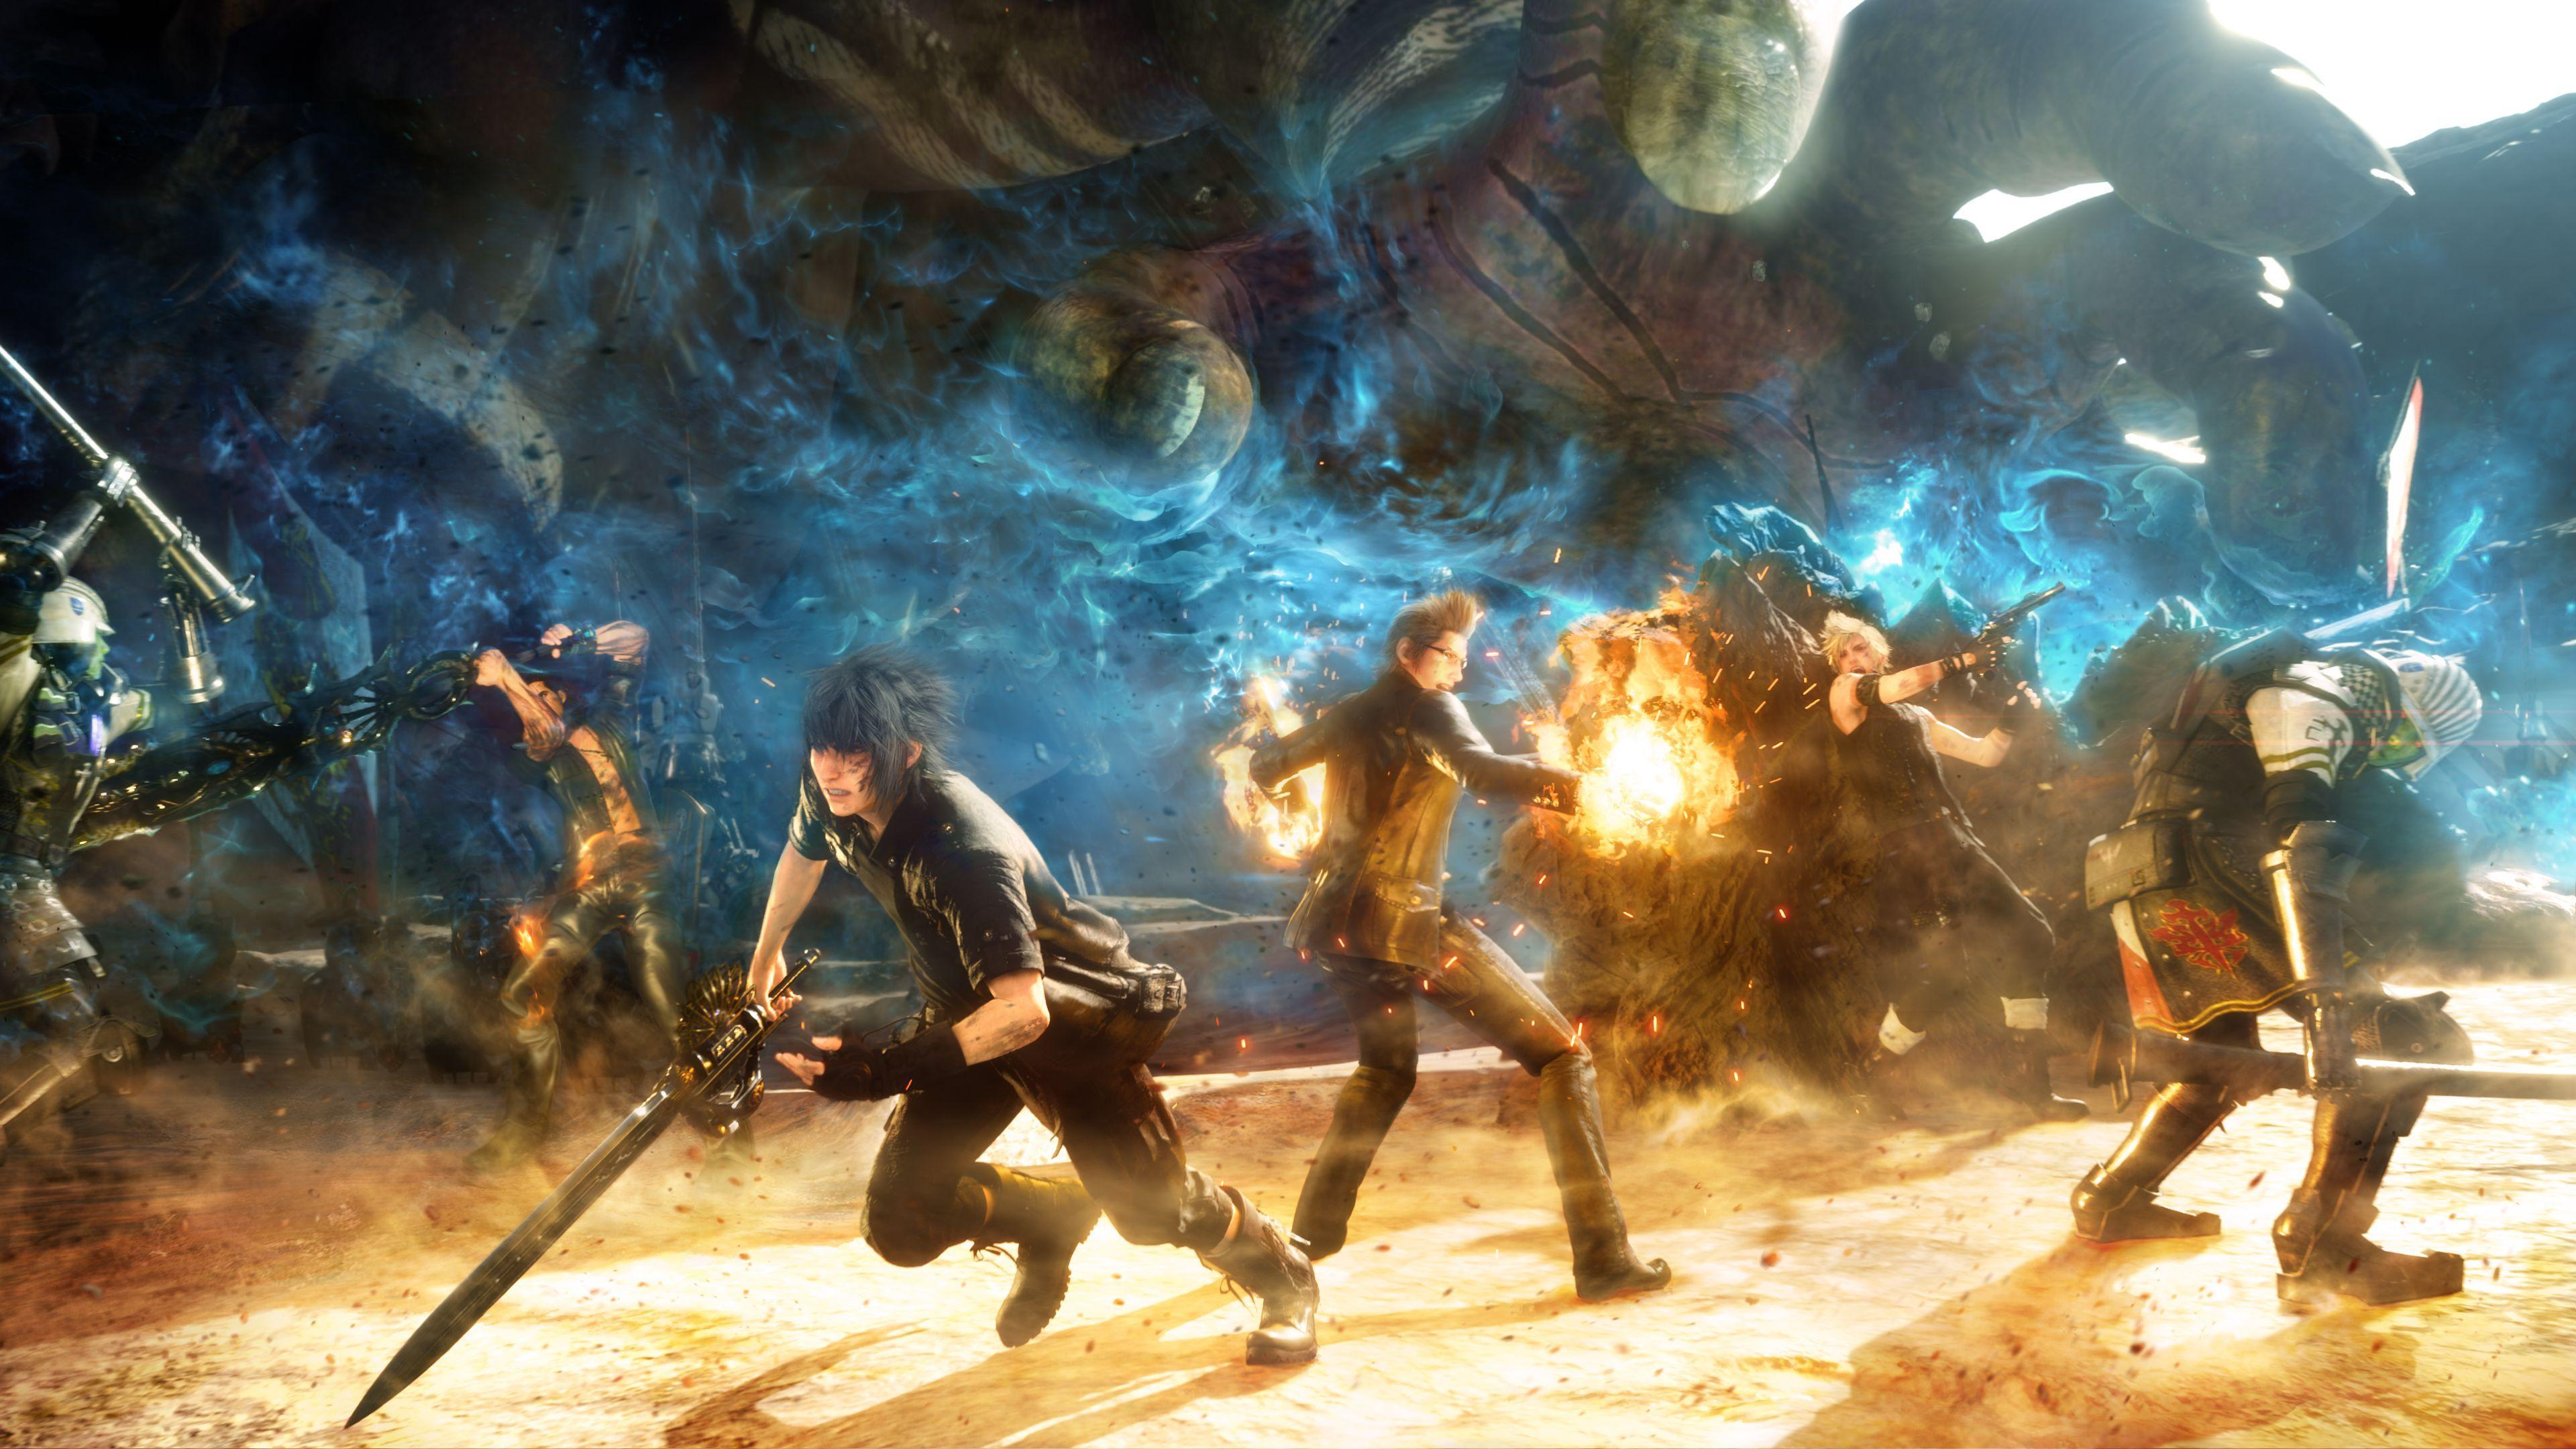 Final Fantasy Xv Wallpapers In Ultra Hd: Final Fantasy XV Wallpapers